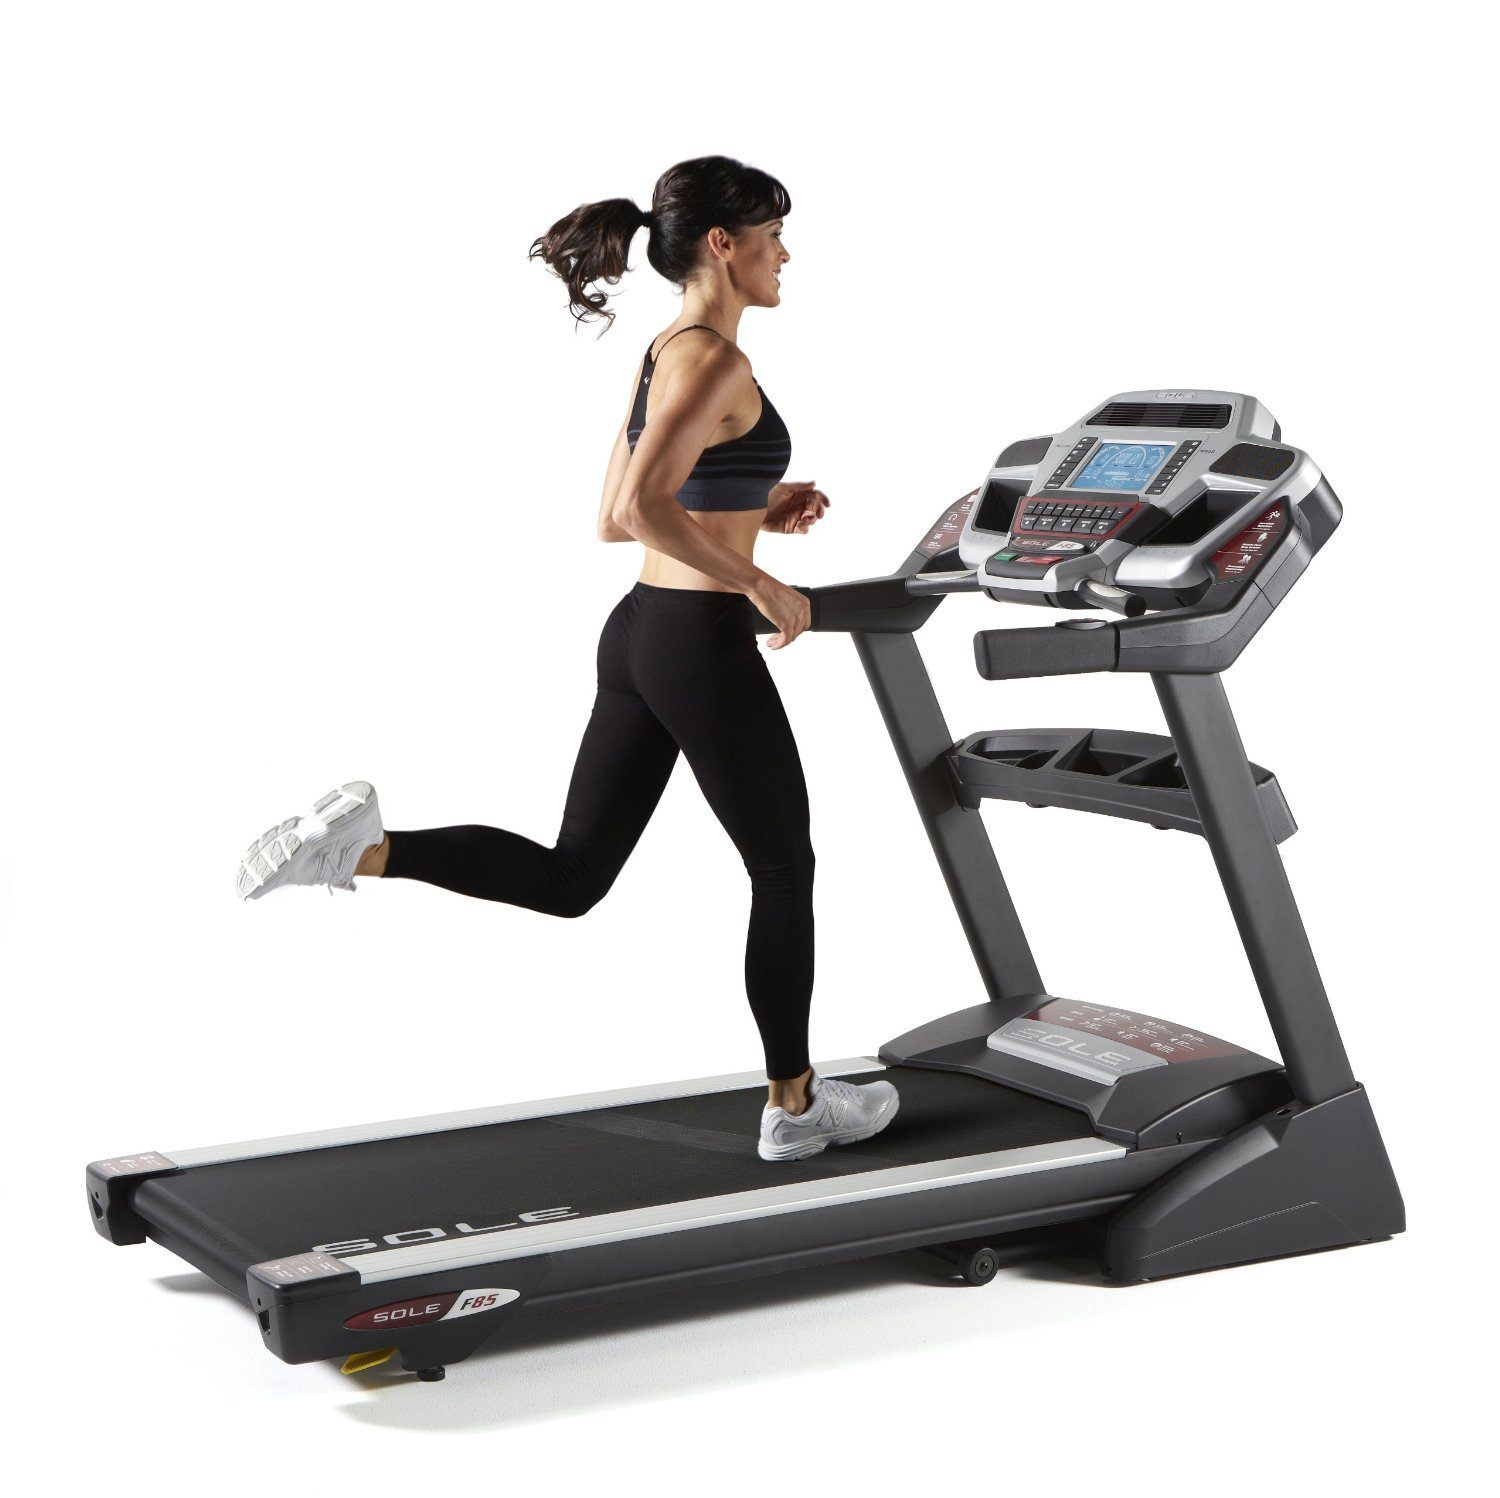 Sole fitness f folding treadmill review